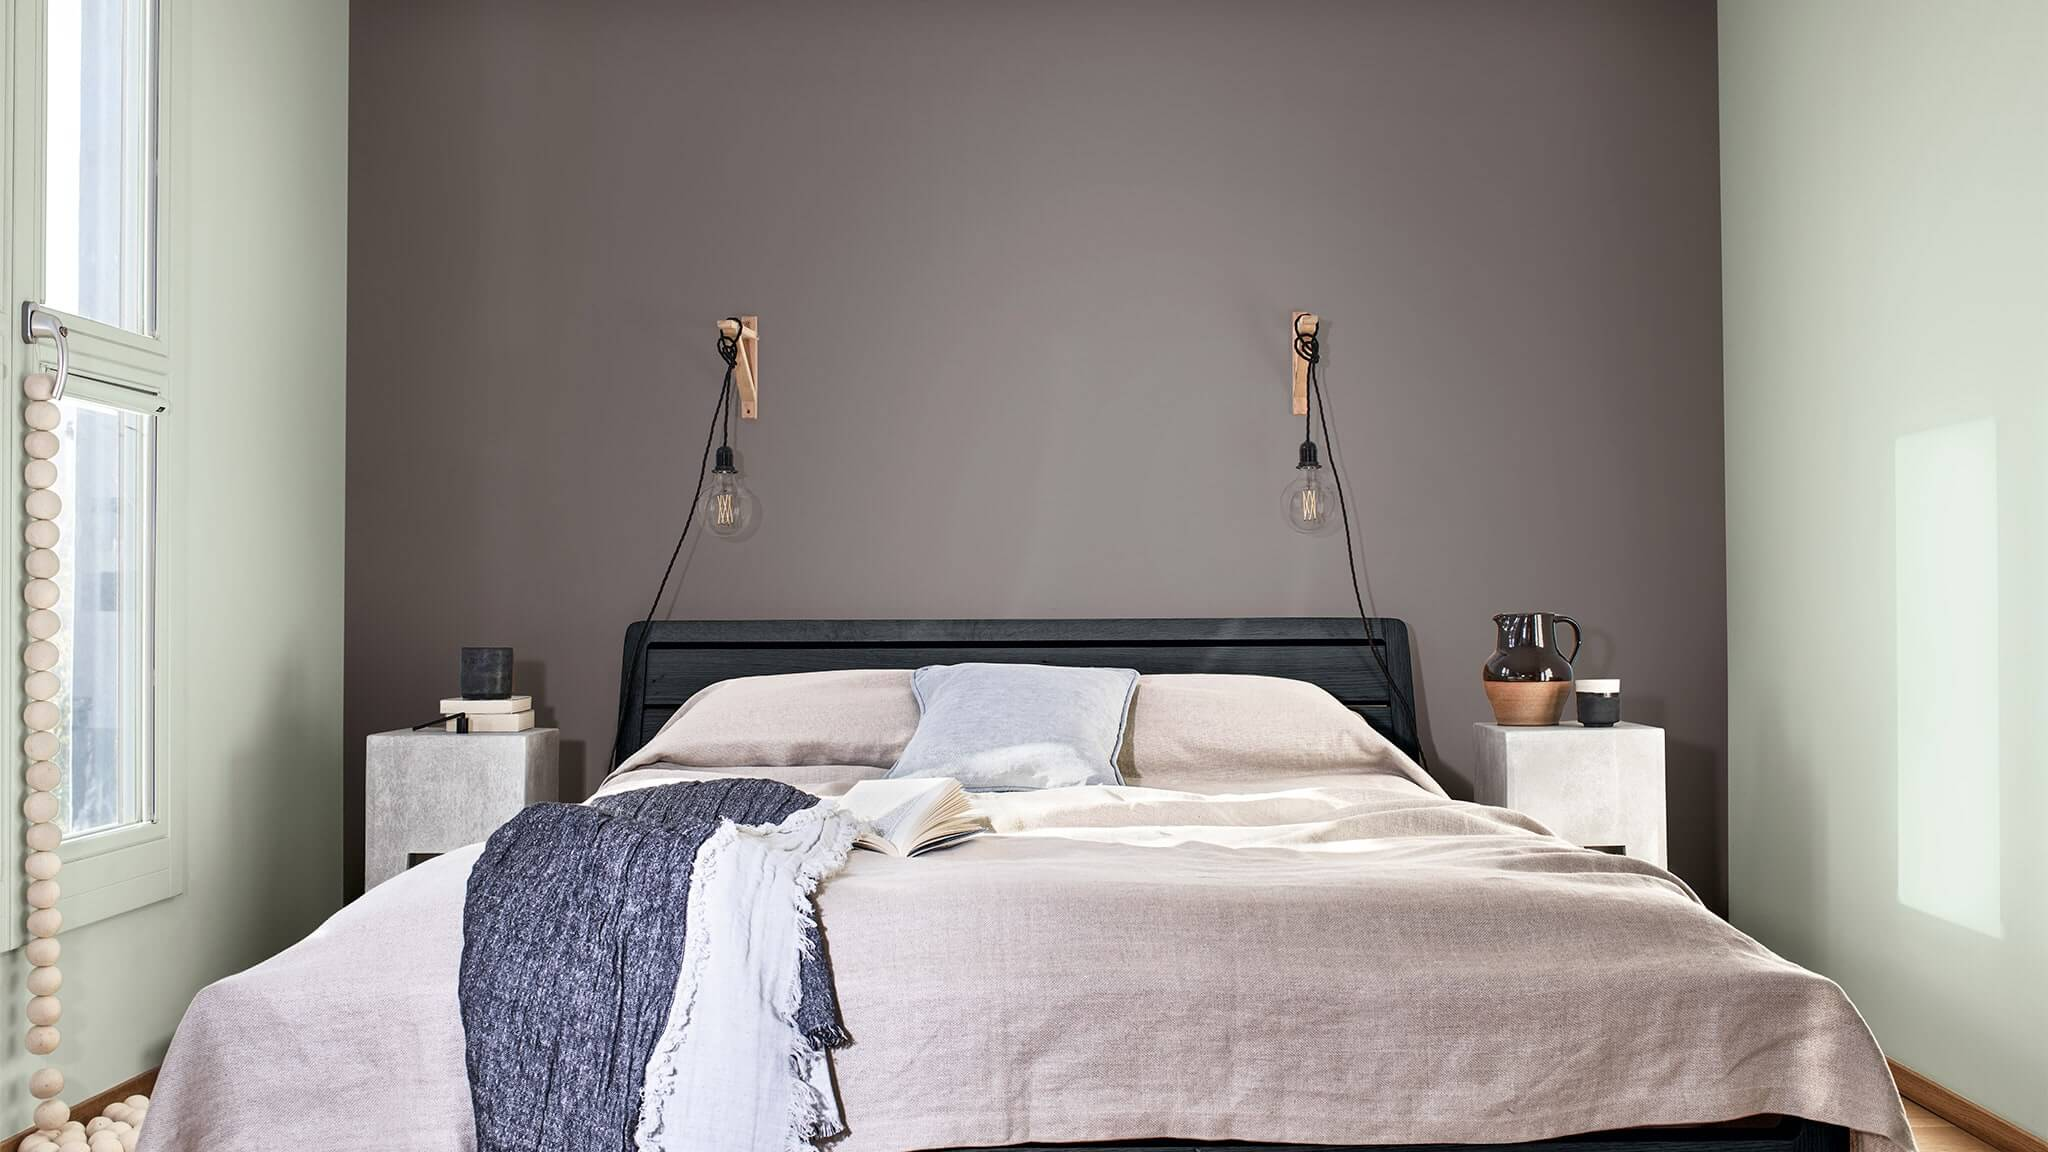 tranquil dawn Can You Handle This Trend? – Tranquil Dawn dulux colour futures colour of the year 2020 a home for meaning bedroom inspiration united kingdom 33